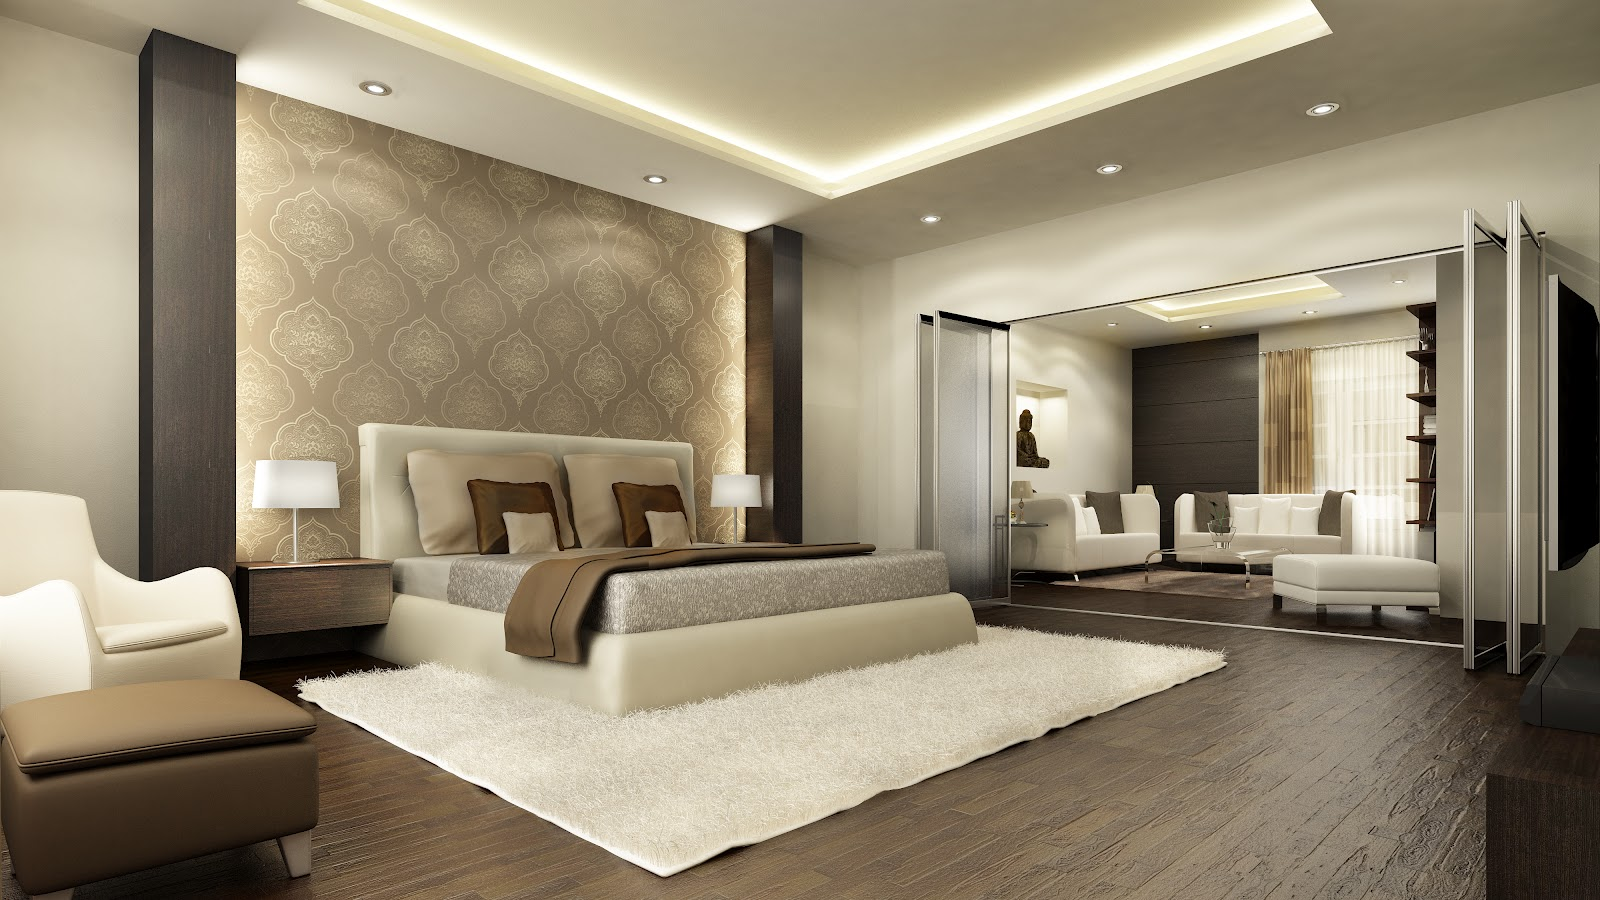 Bedroom Layouts Ideas 25 Best Bedroom Designs Ideas